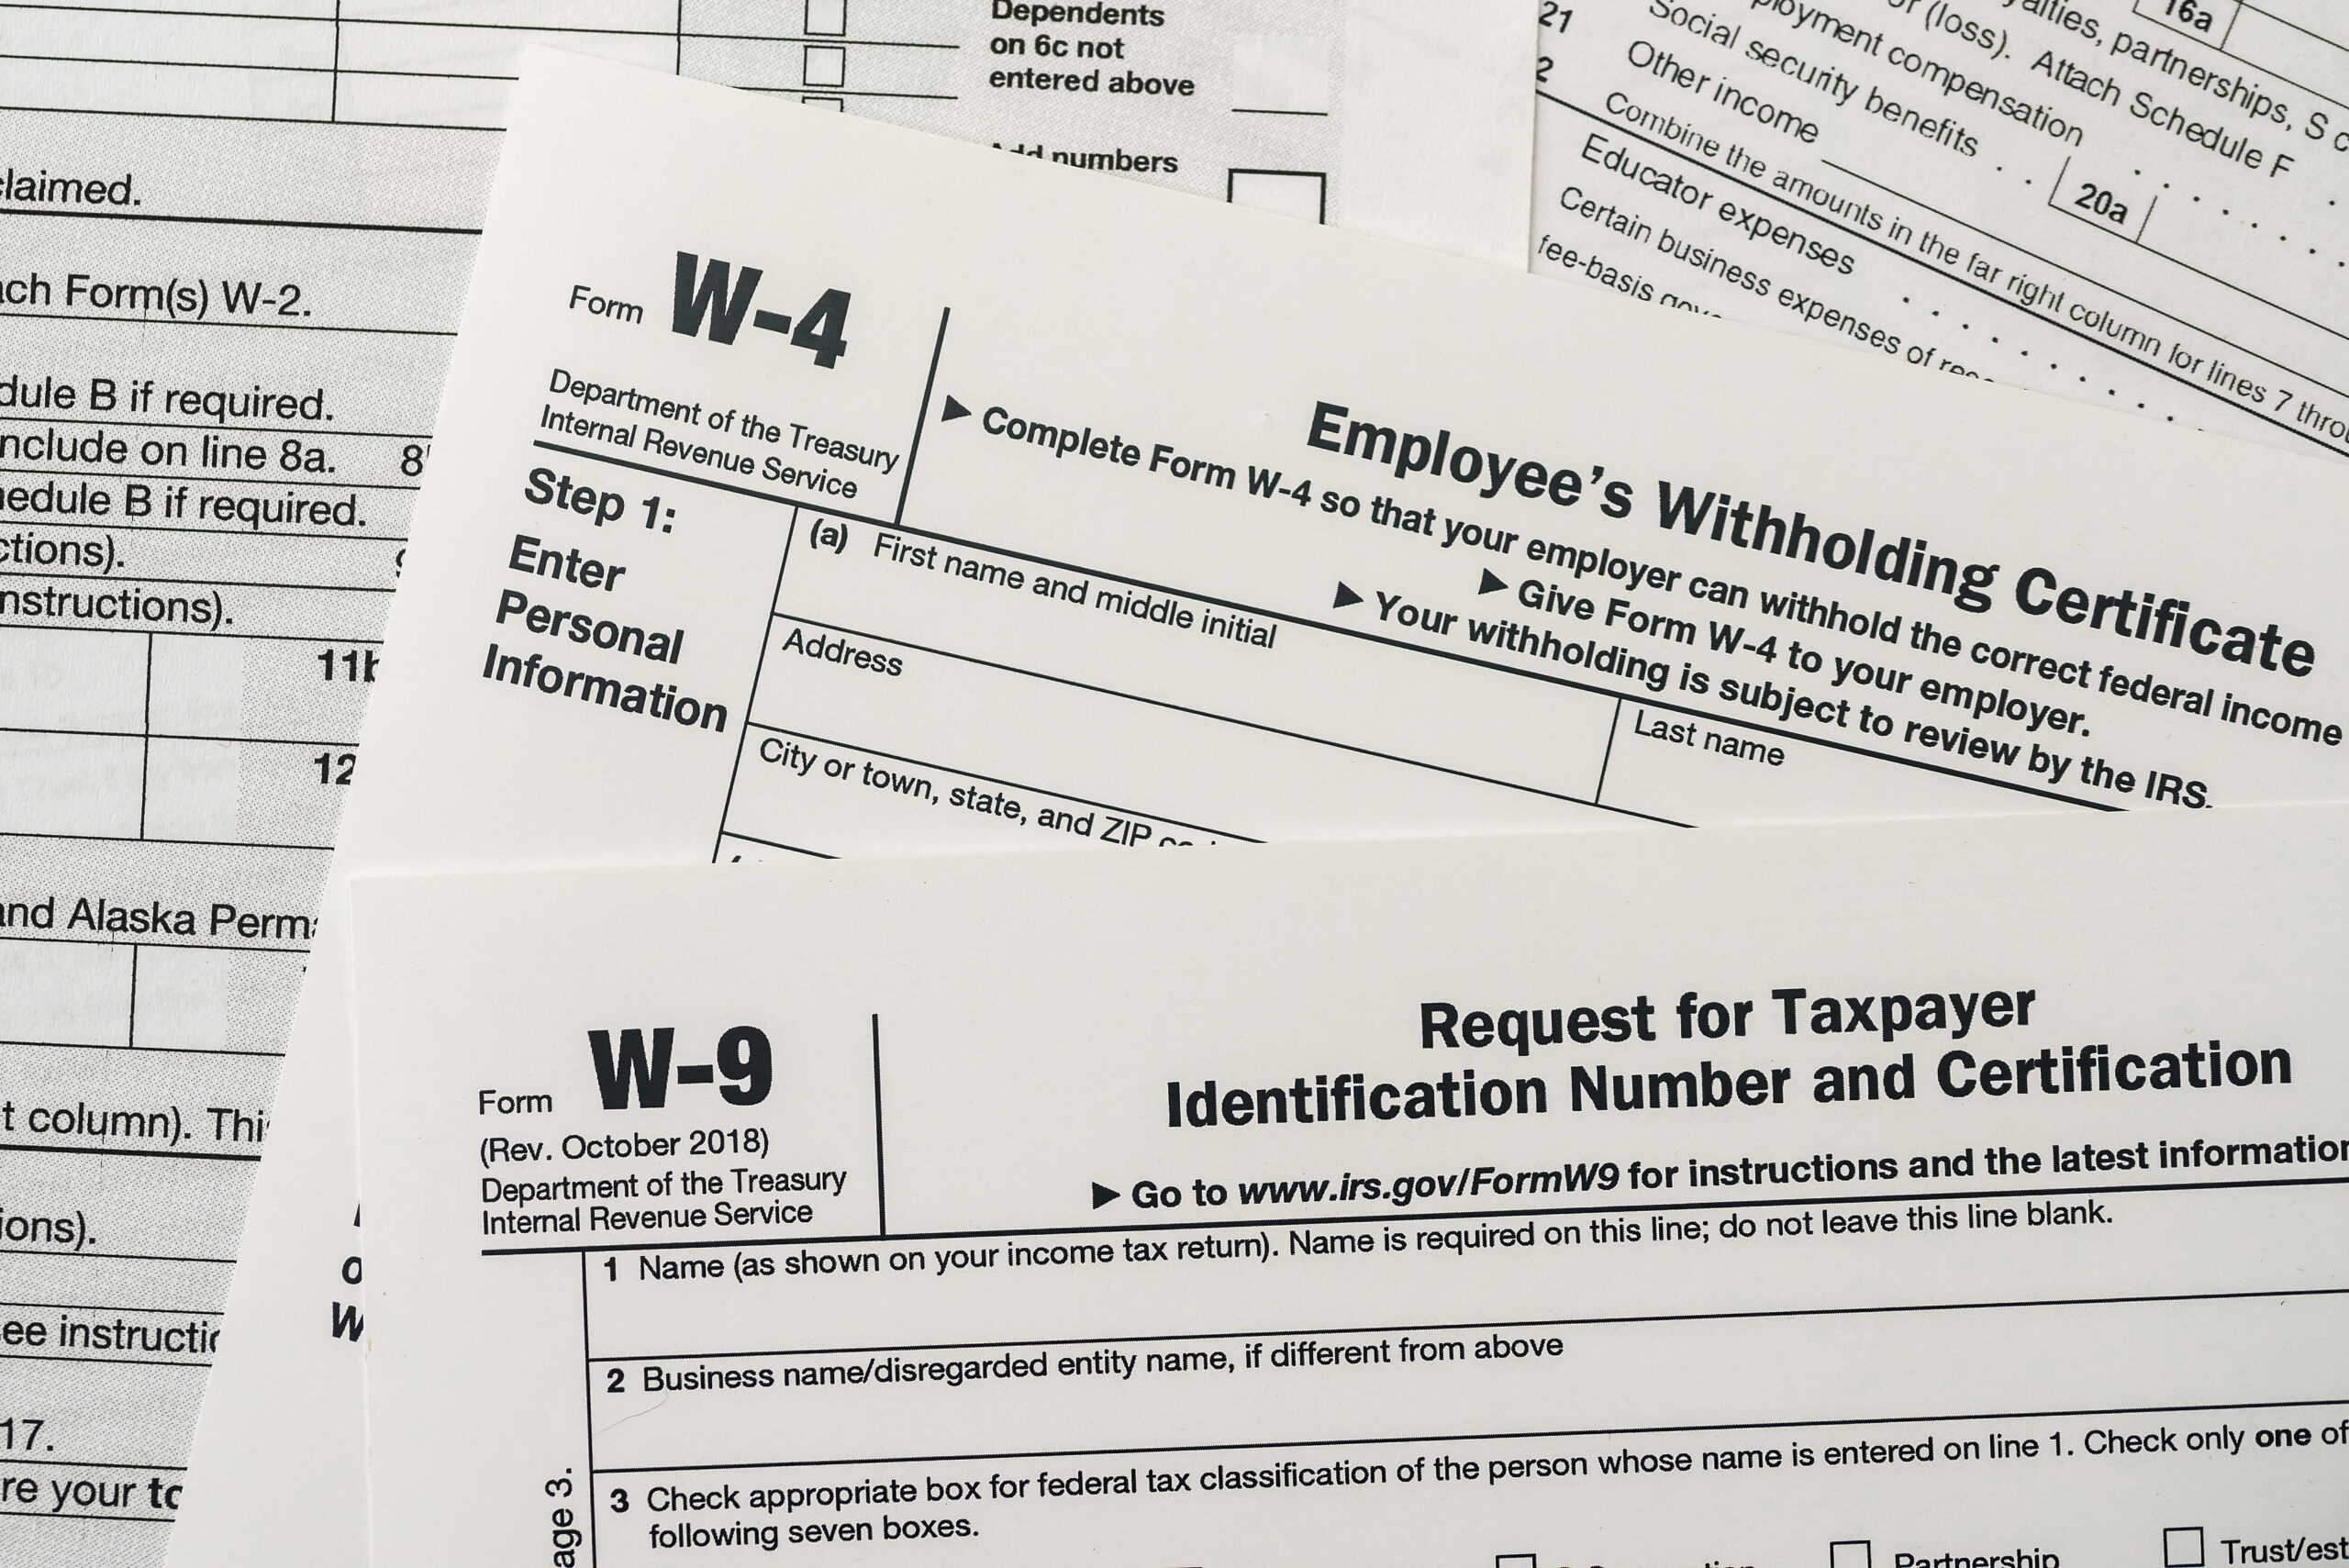 What is the difference between a W-2, W-3, W-4, W-8 and W-9